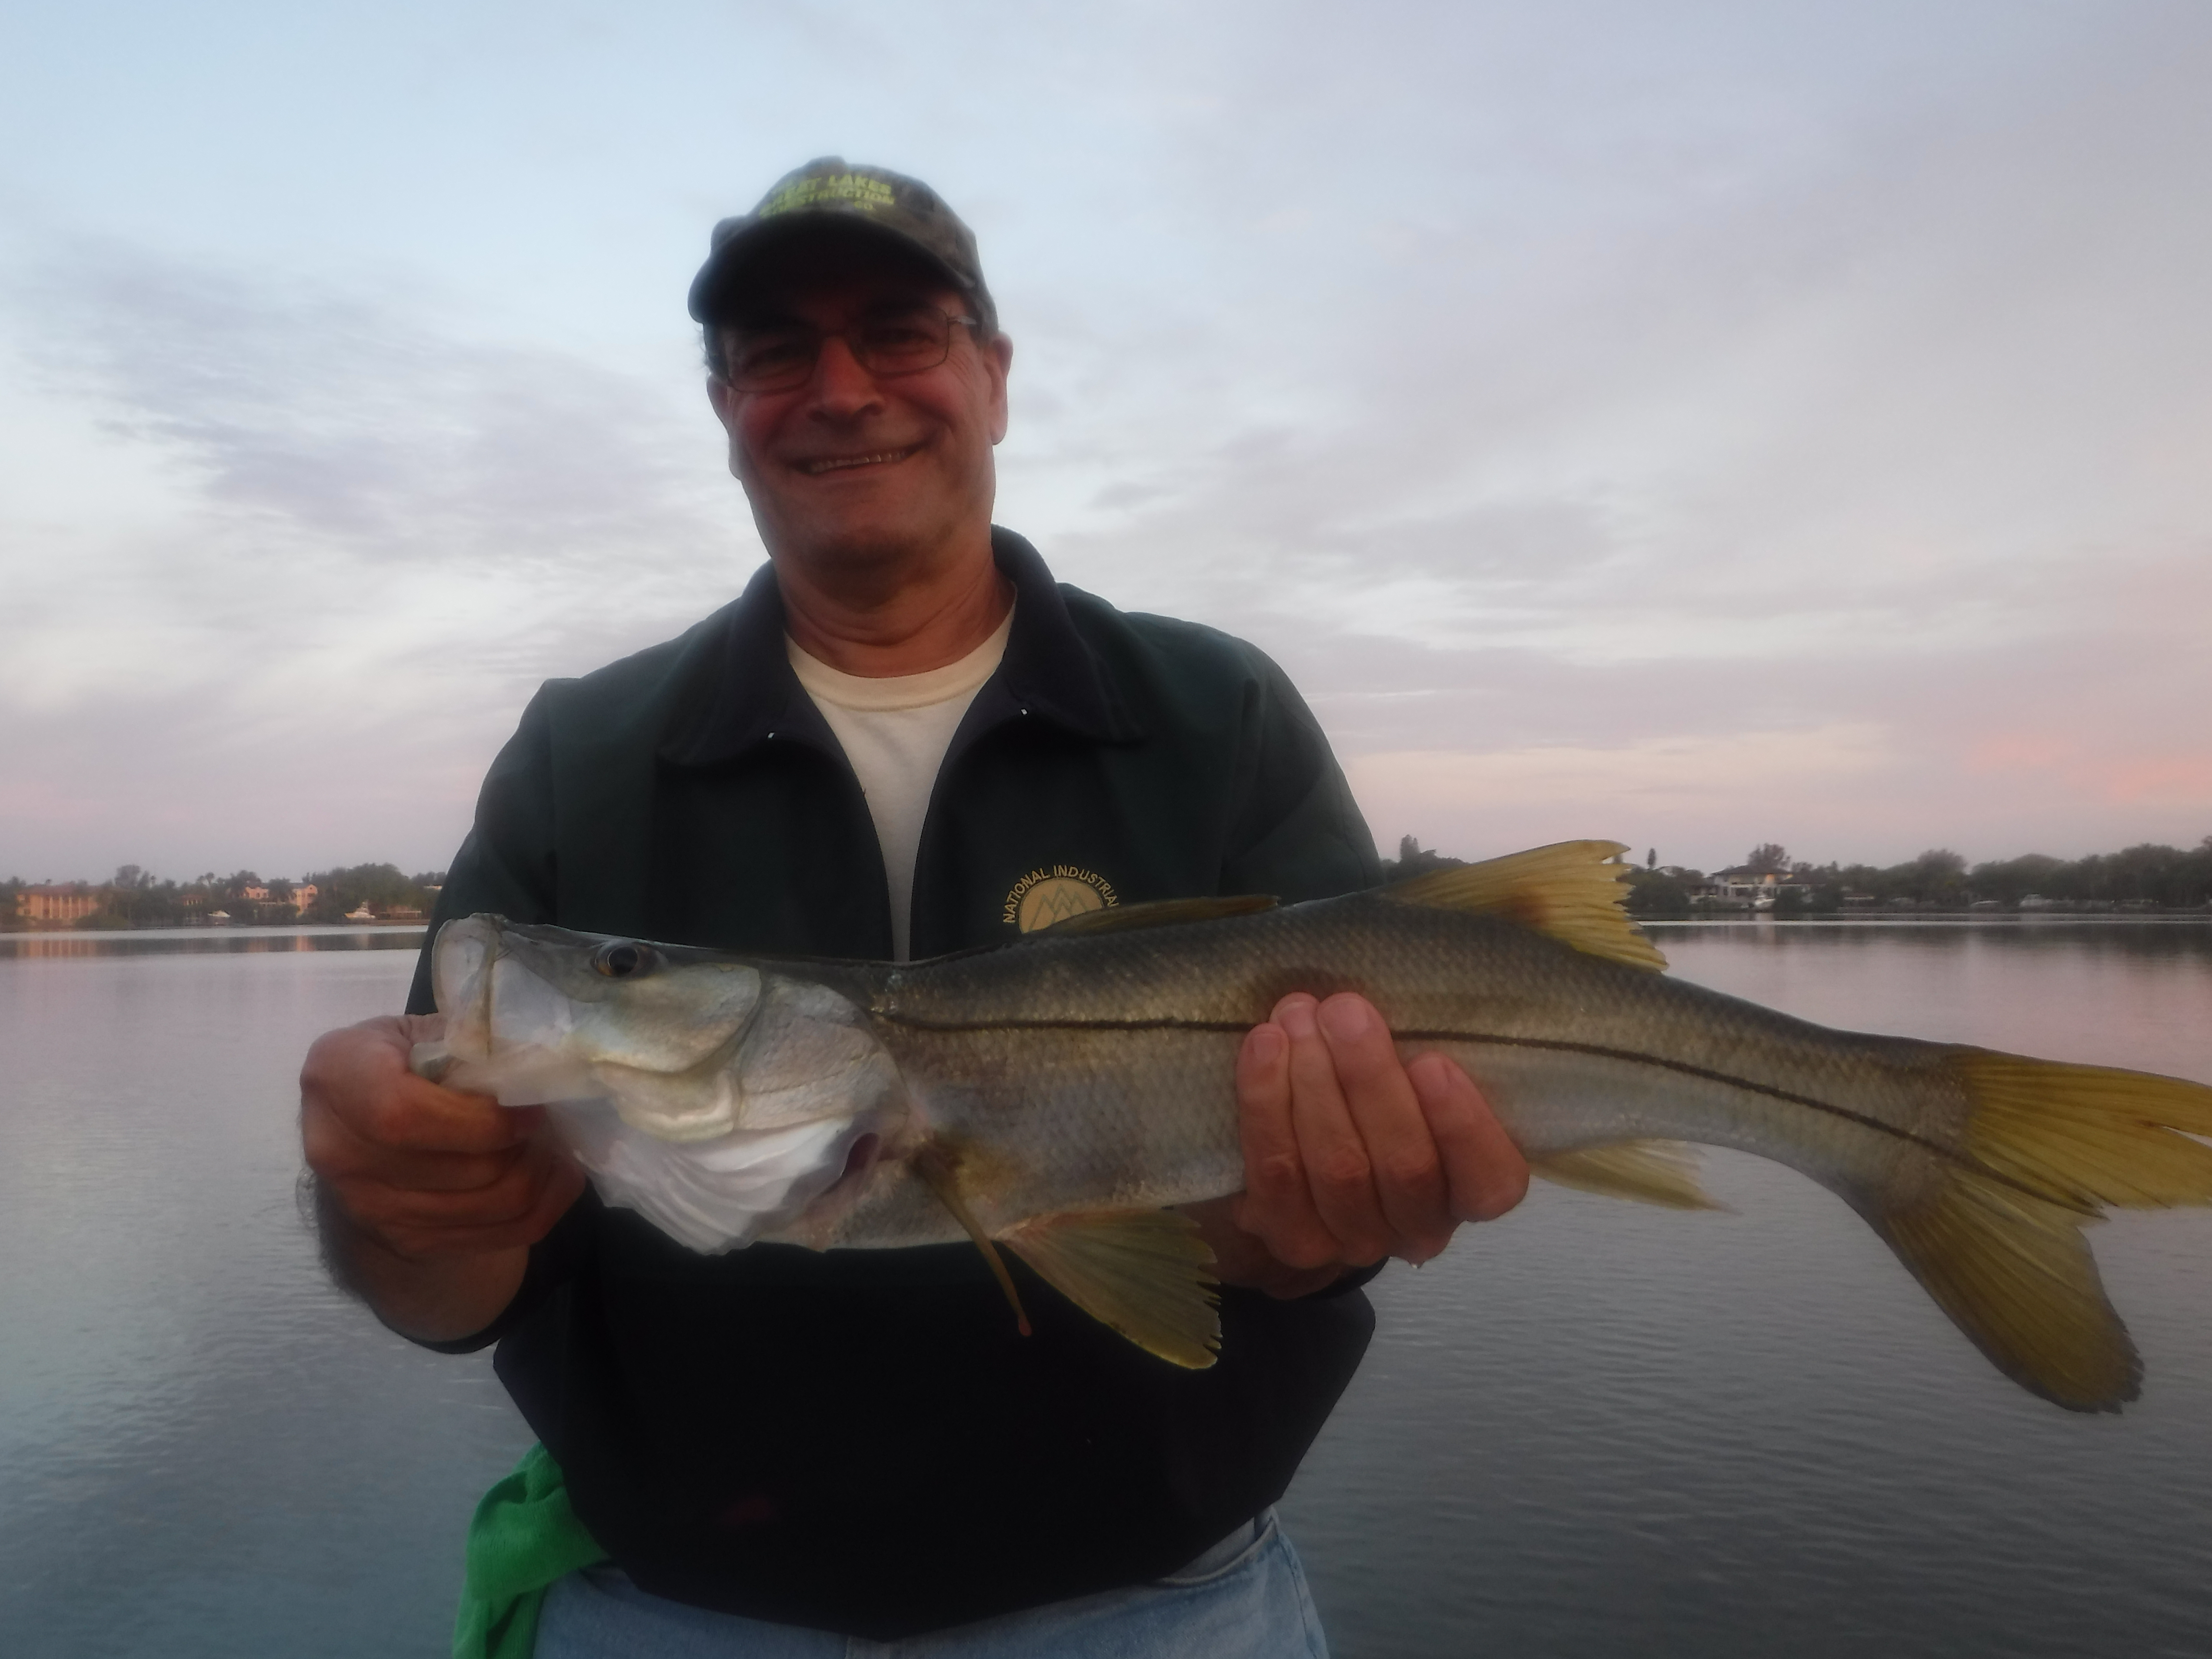 Autumn fishing charters produce for anglers in sarasota for Fishing charters sarasota fl